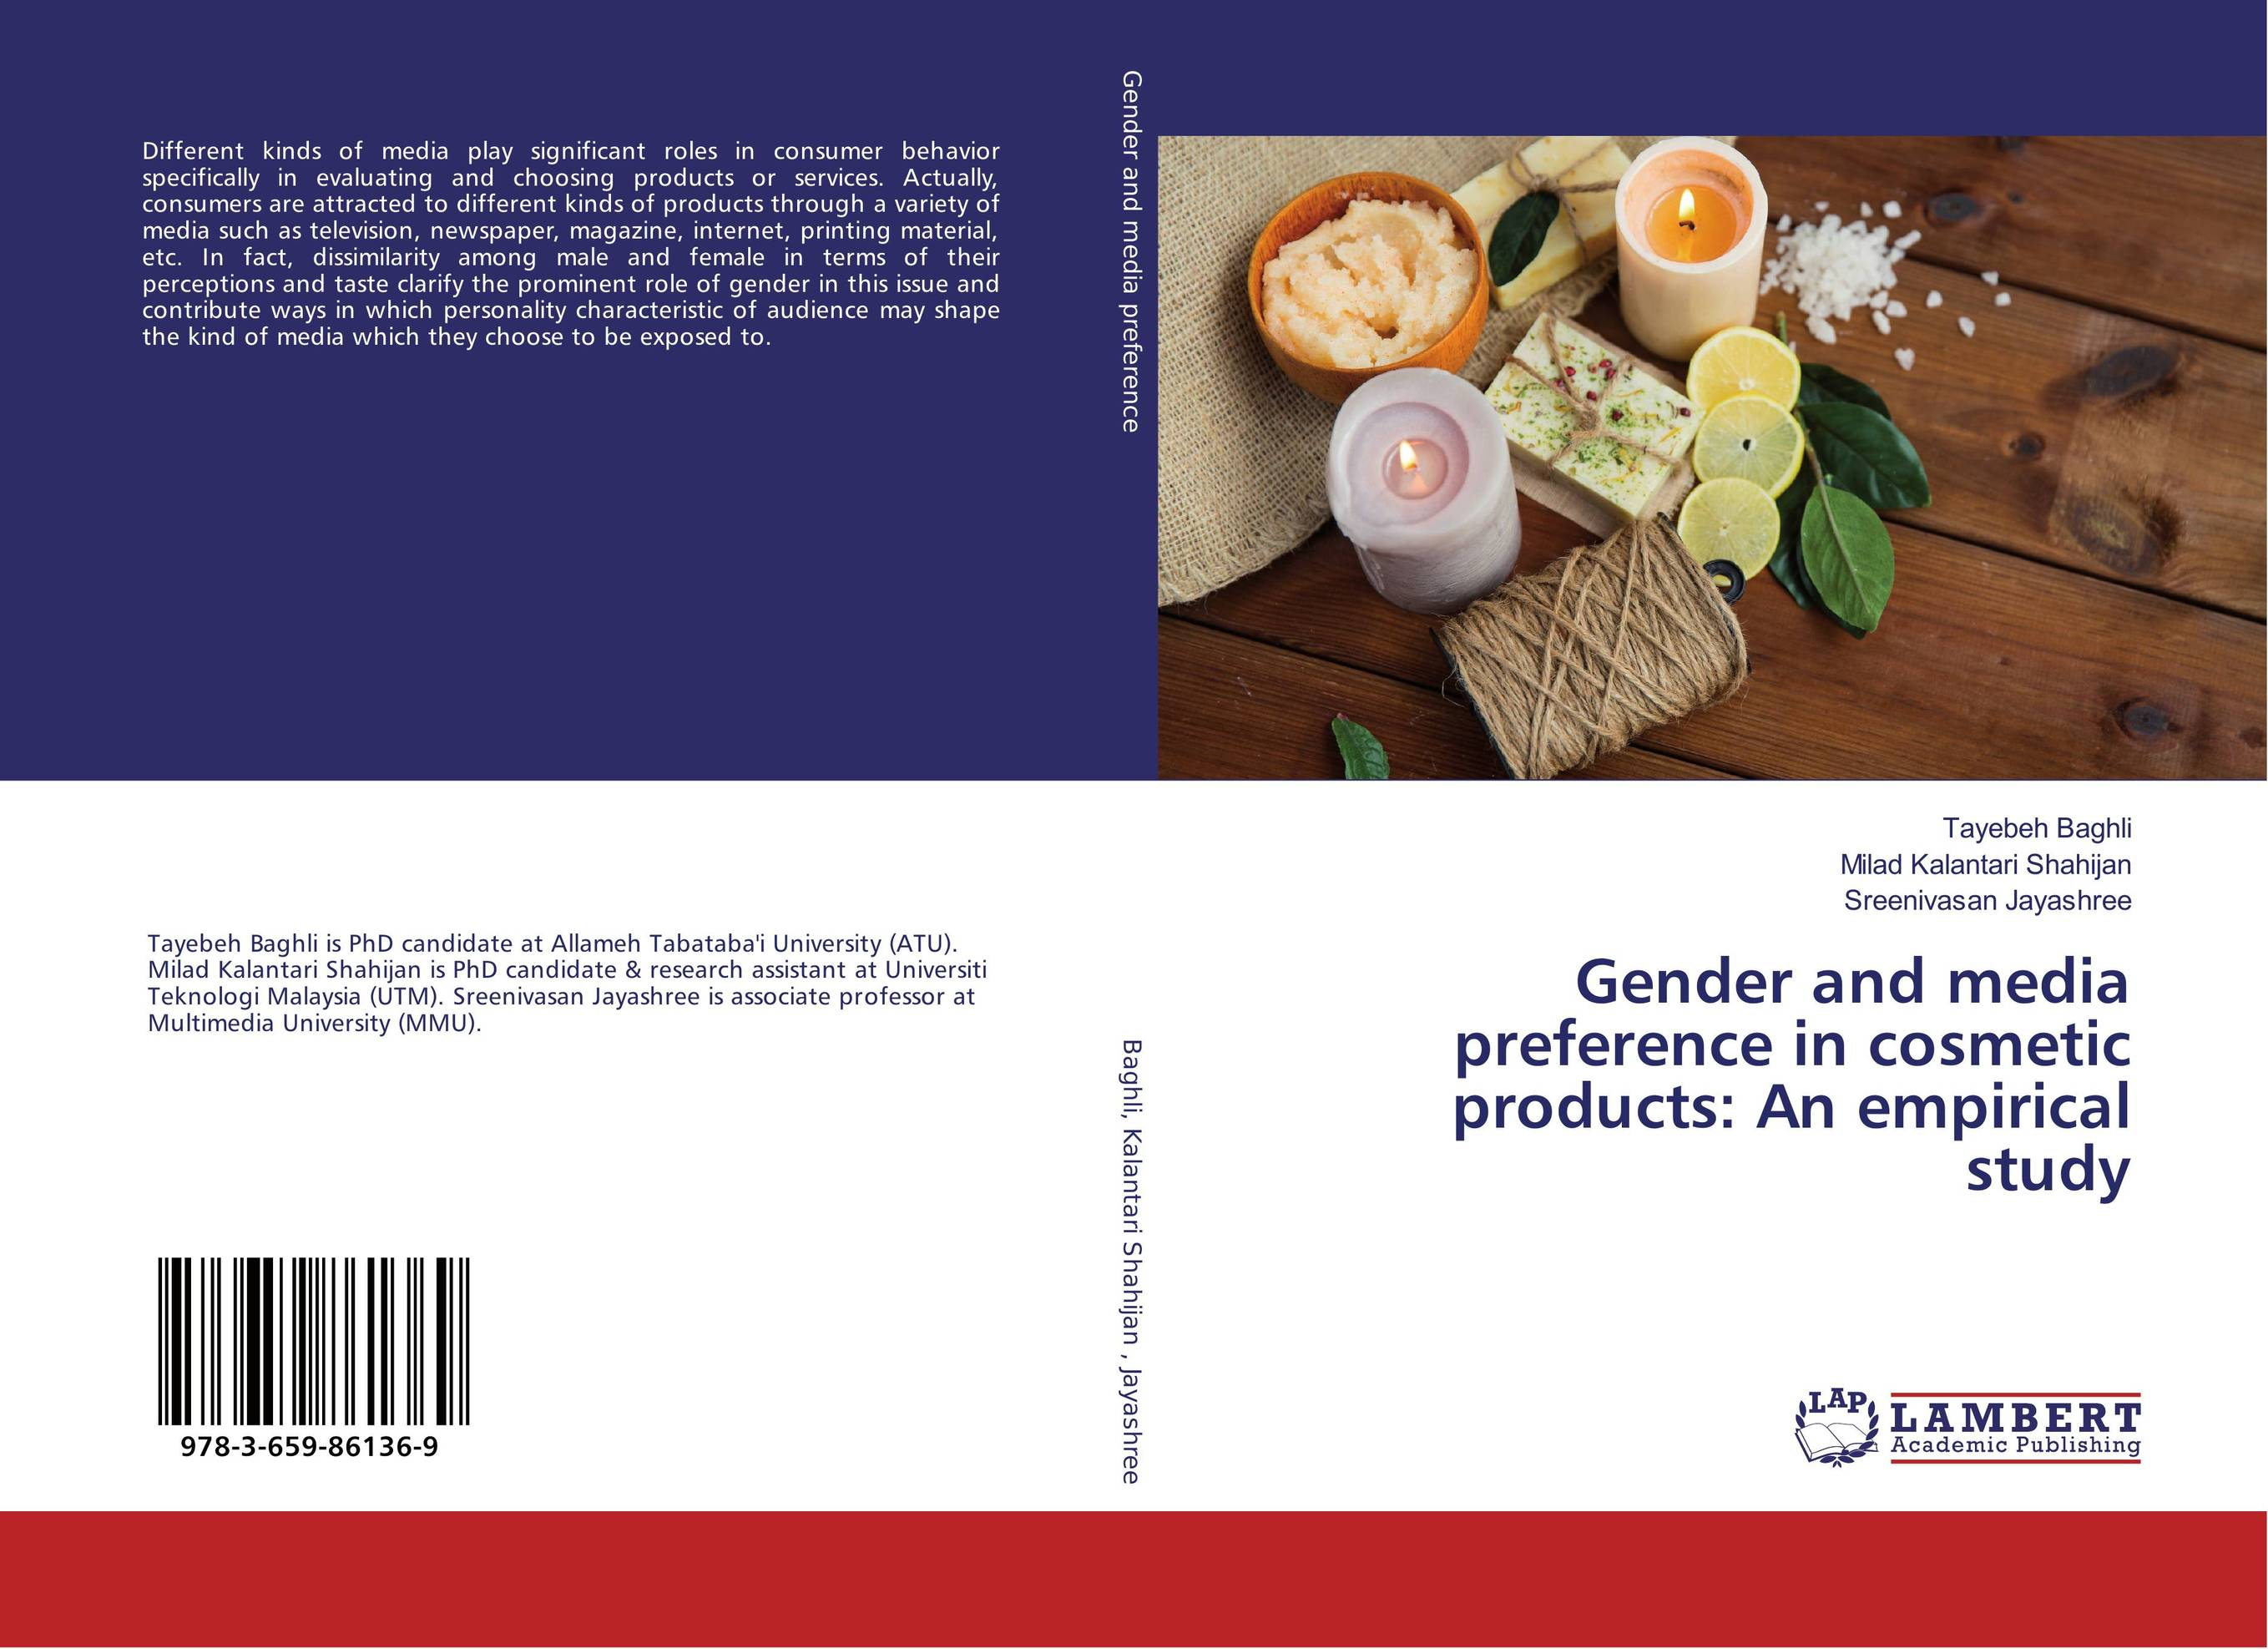 Gender and media preference in cosmetic products: An empirical study